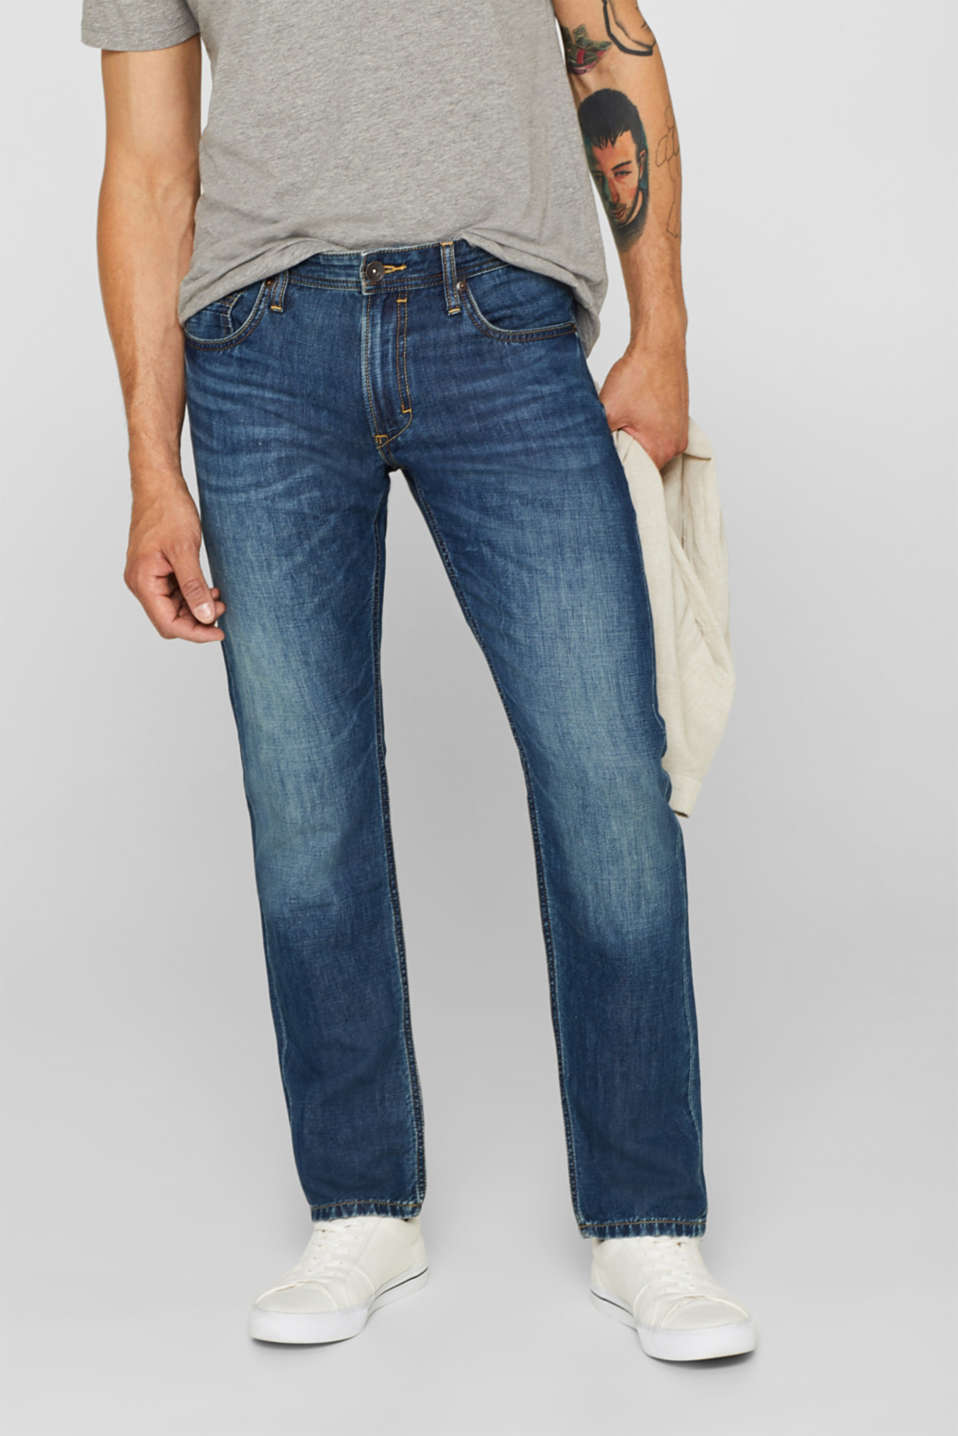 Esprit - Met linnen: jeans met washed-out effect